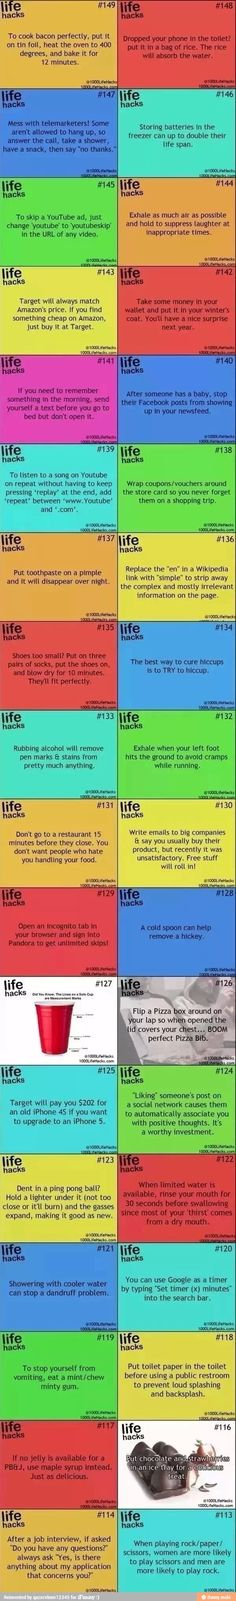 Life hacks... some of these are not so great but most of them are pretty awesome!